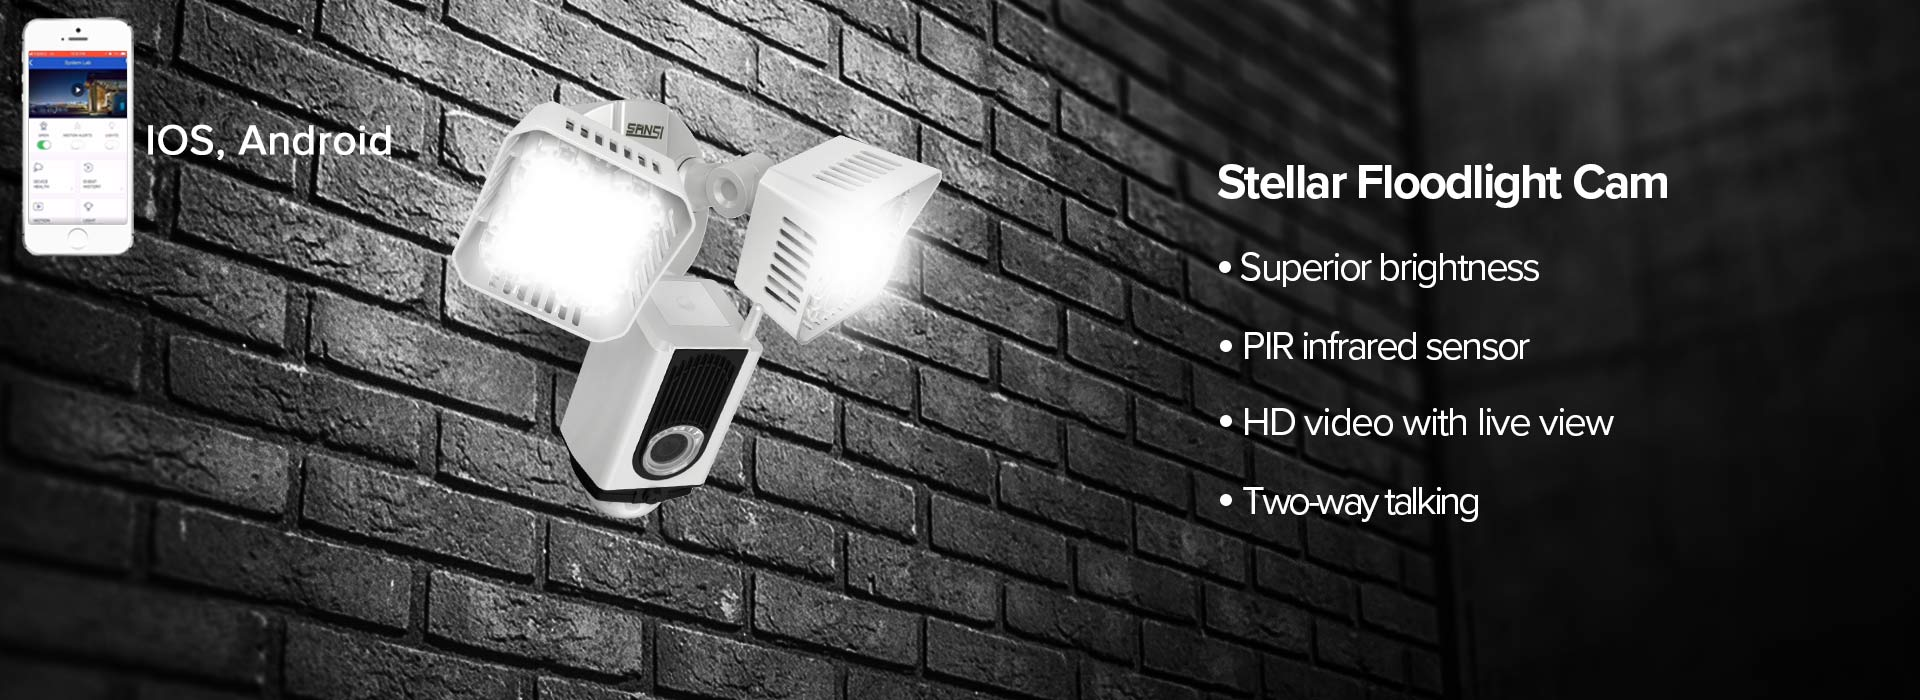 smart led floodlight cam displays on cellphone